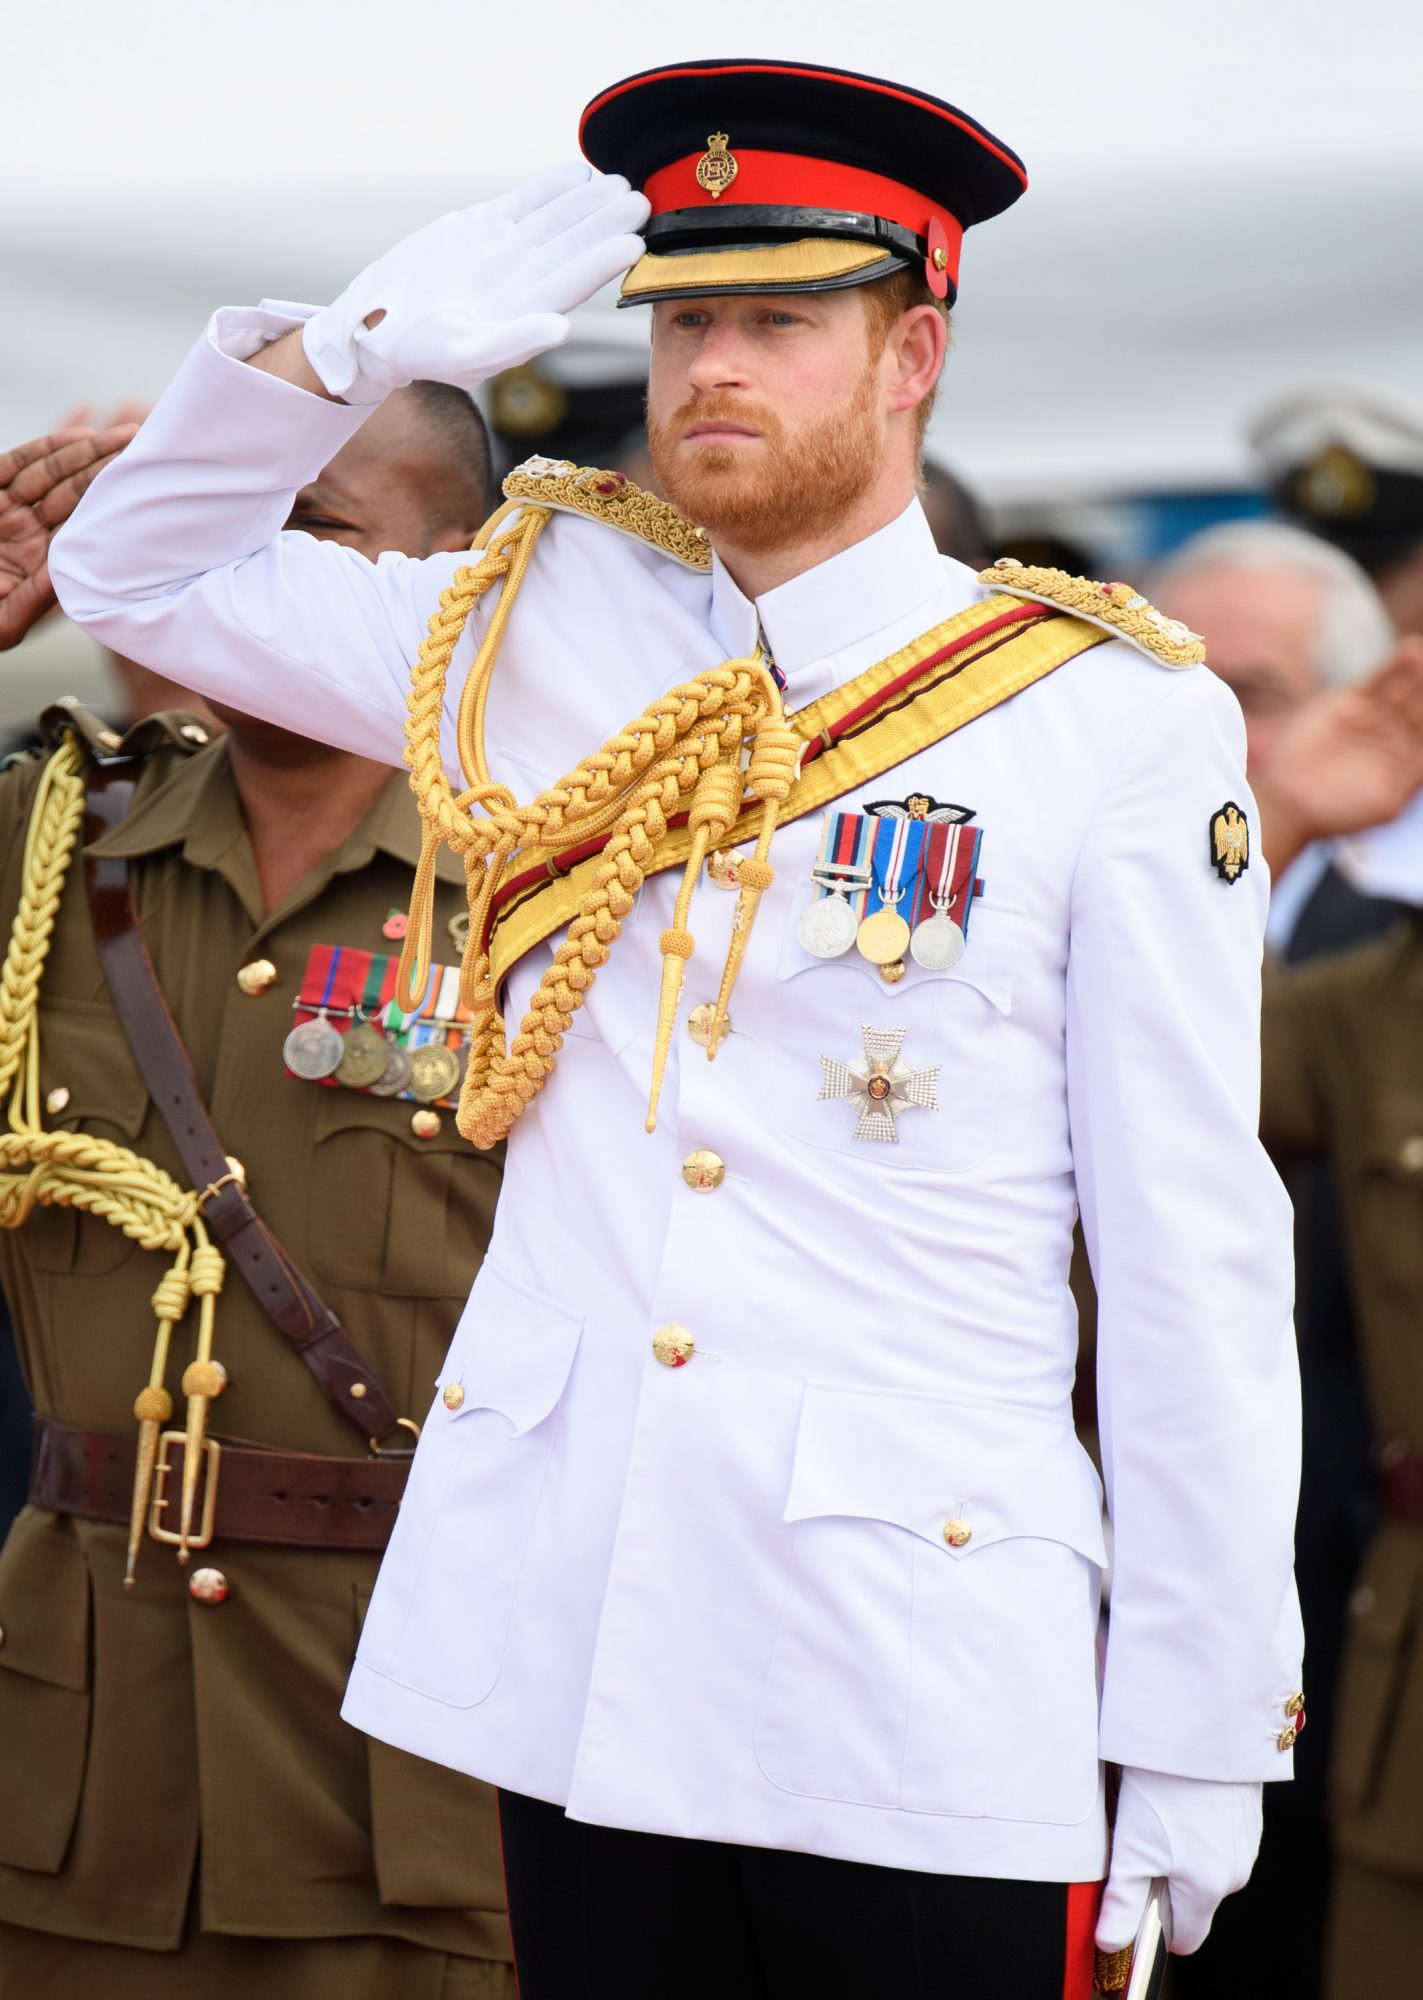 Prince Harry Fiji Tour